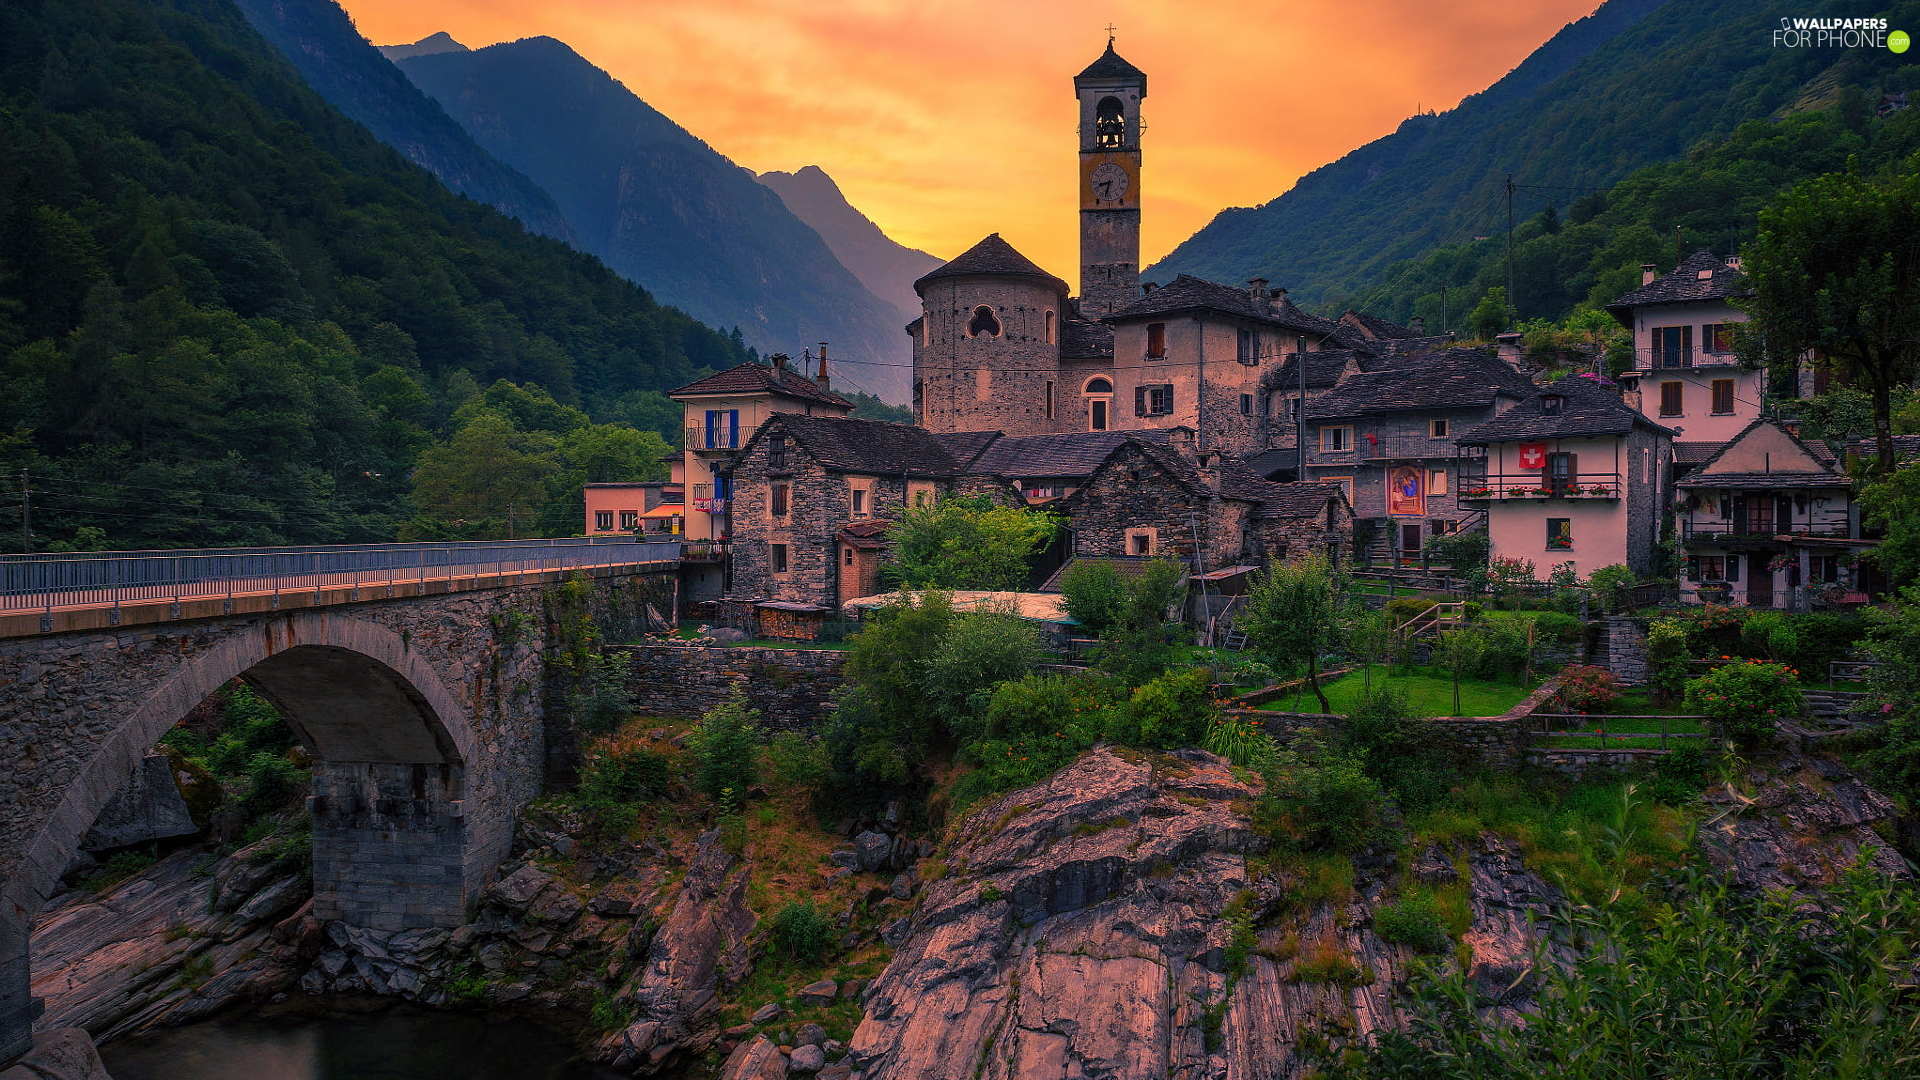 Mountains, bridge, Switzerland, River, Ticino Canton, Houses, Church, Lavertezzo